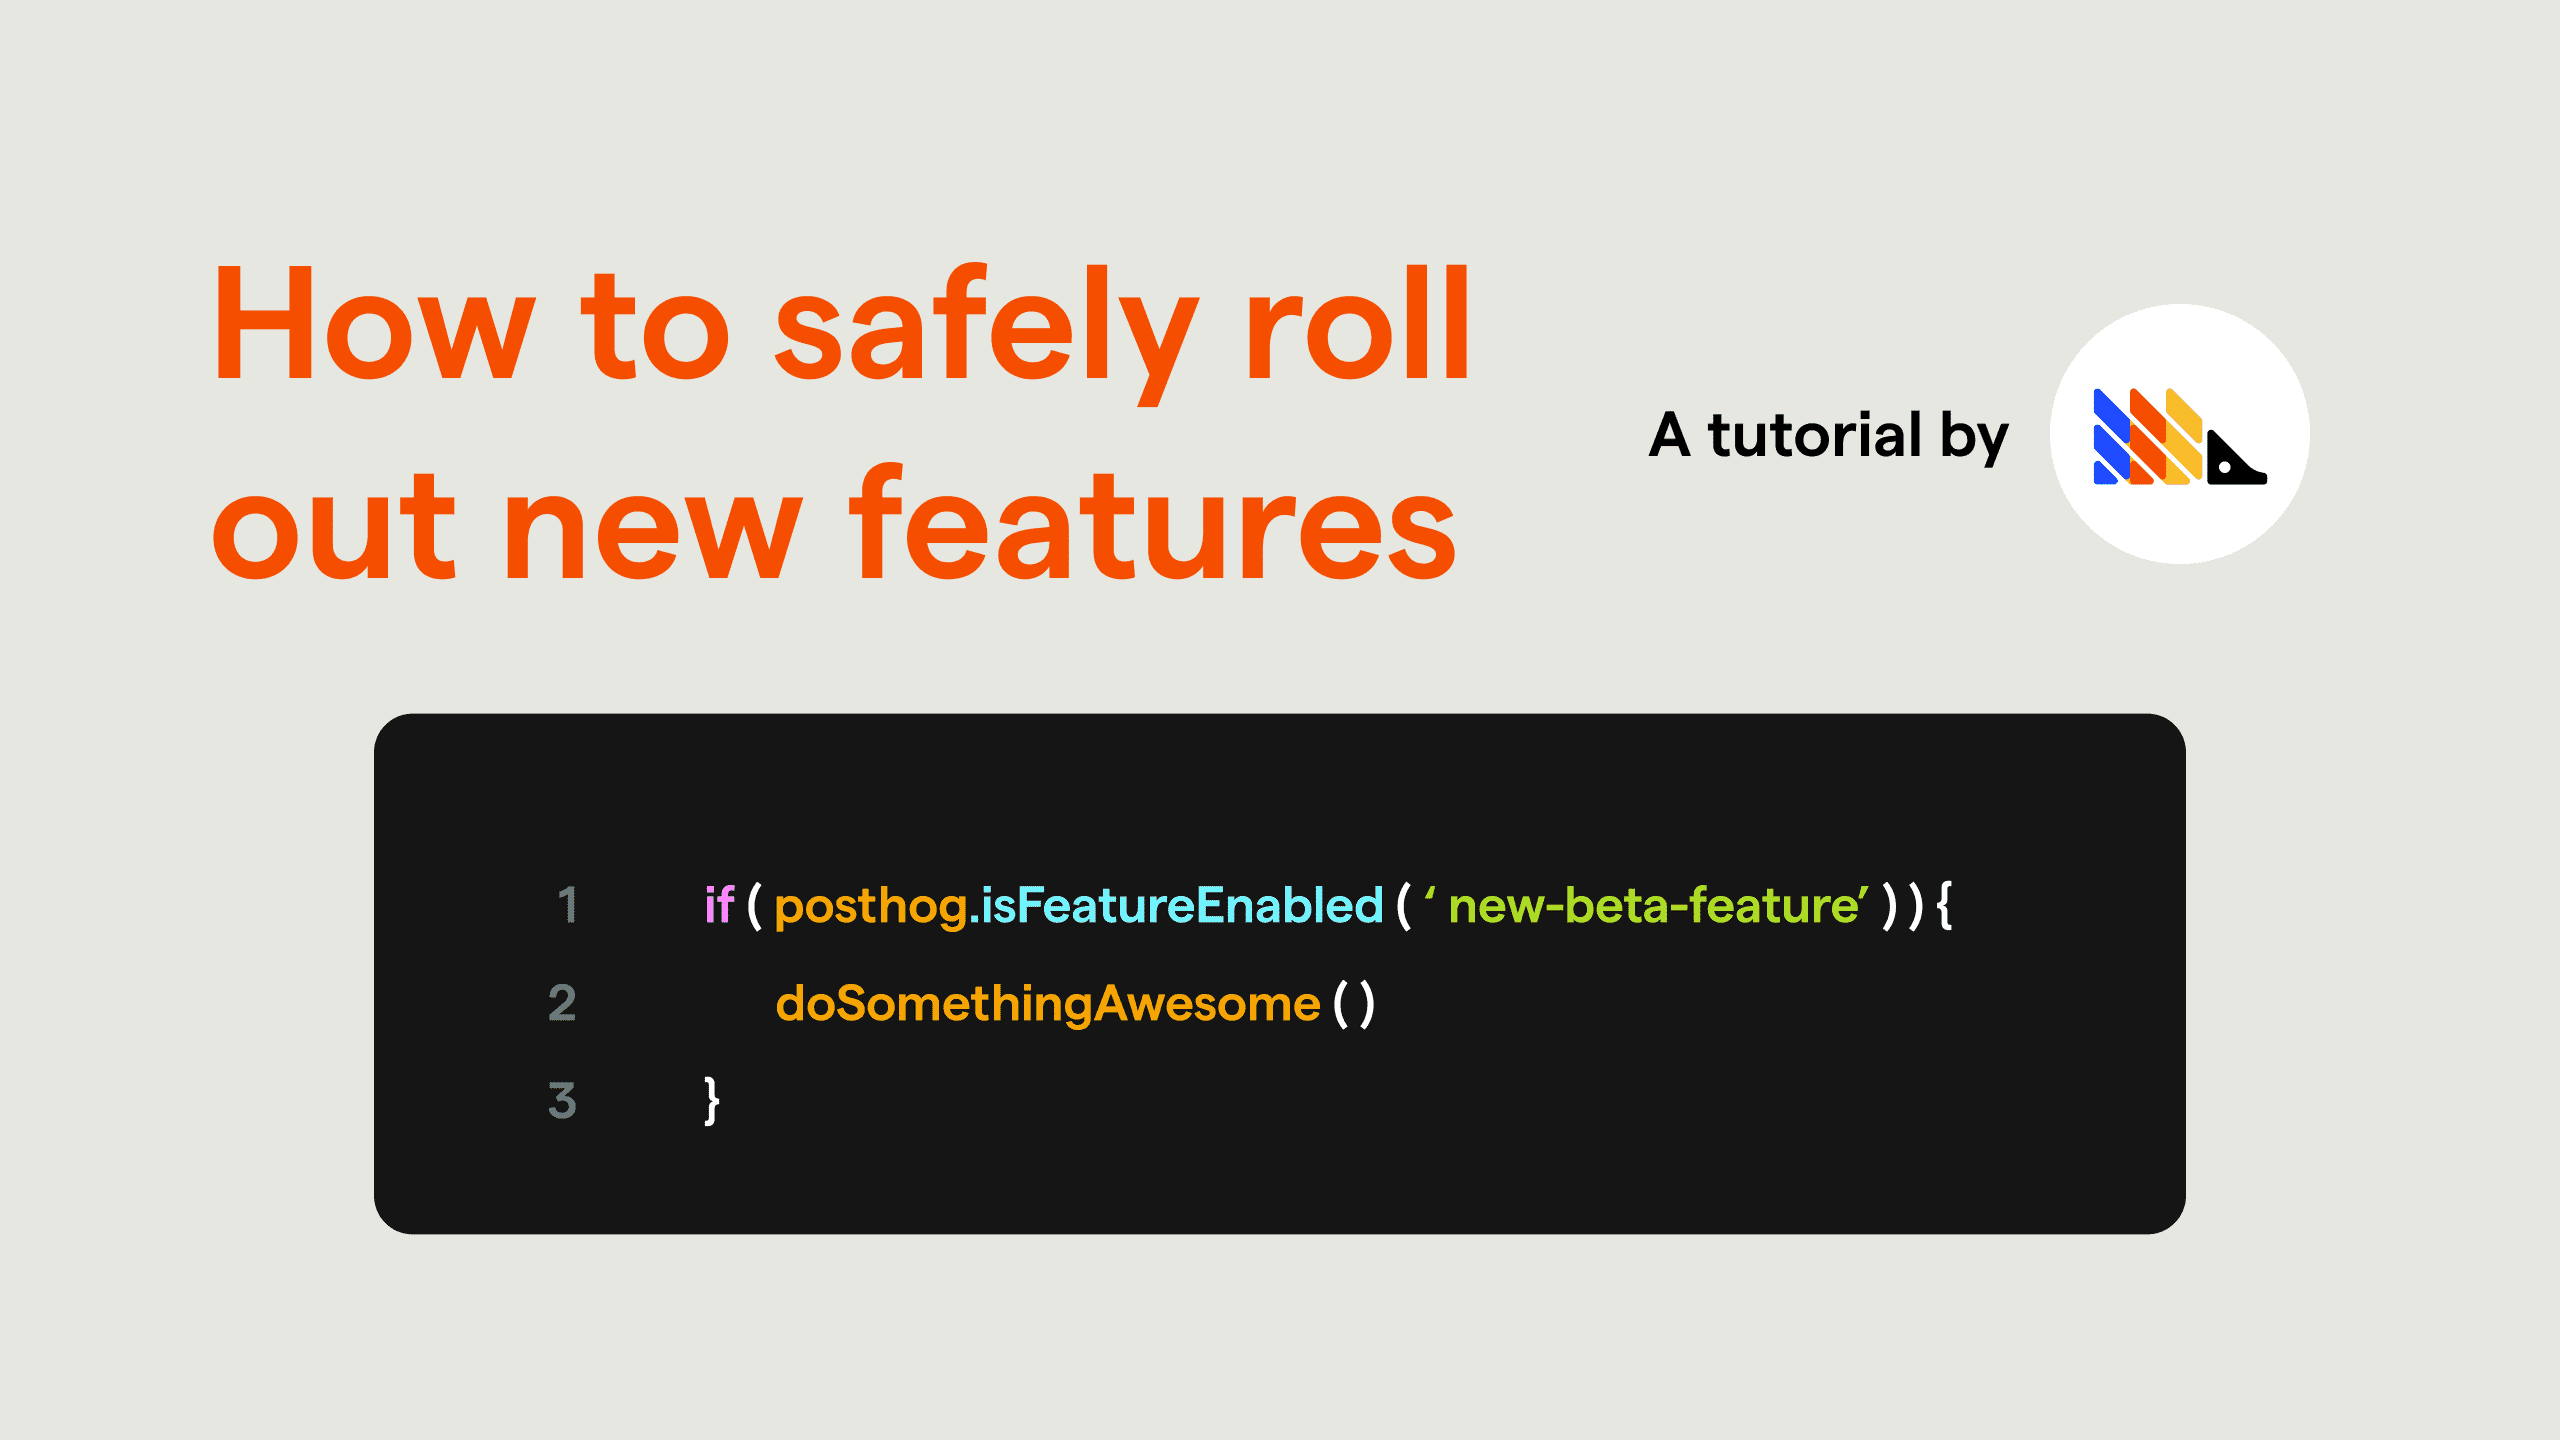 How to safely roll out new features